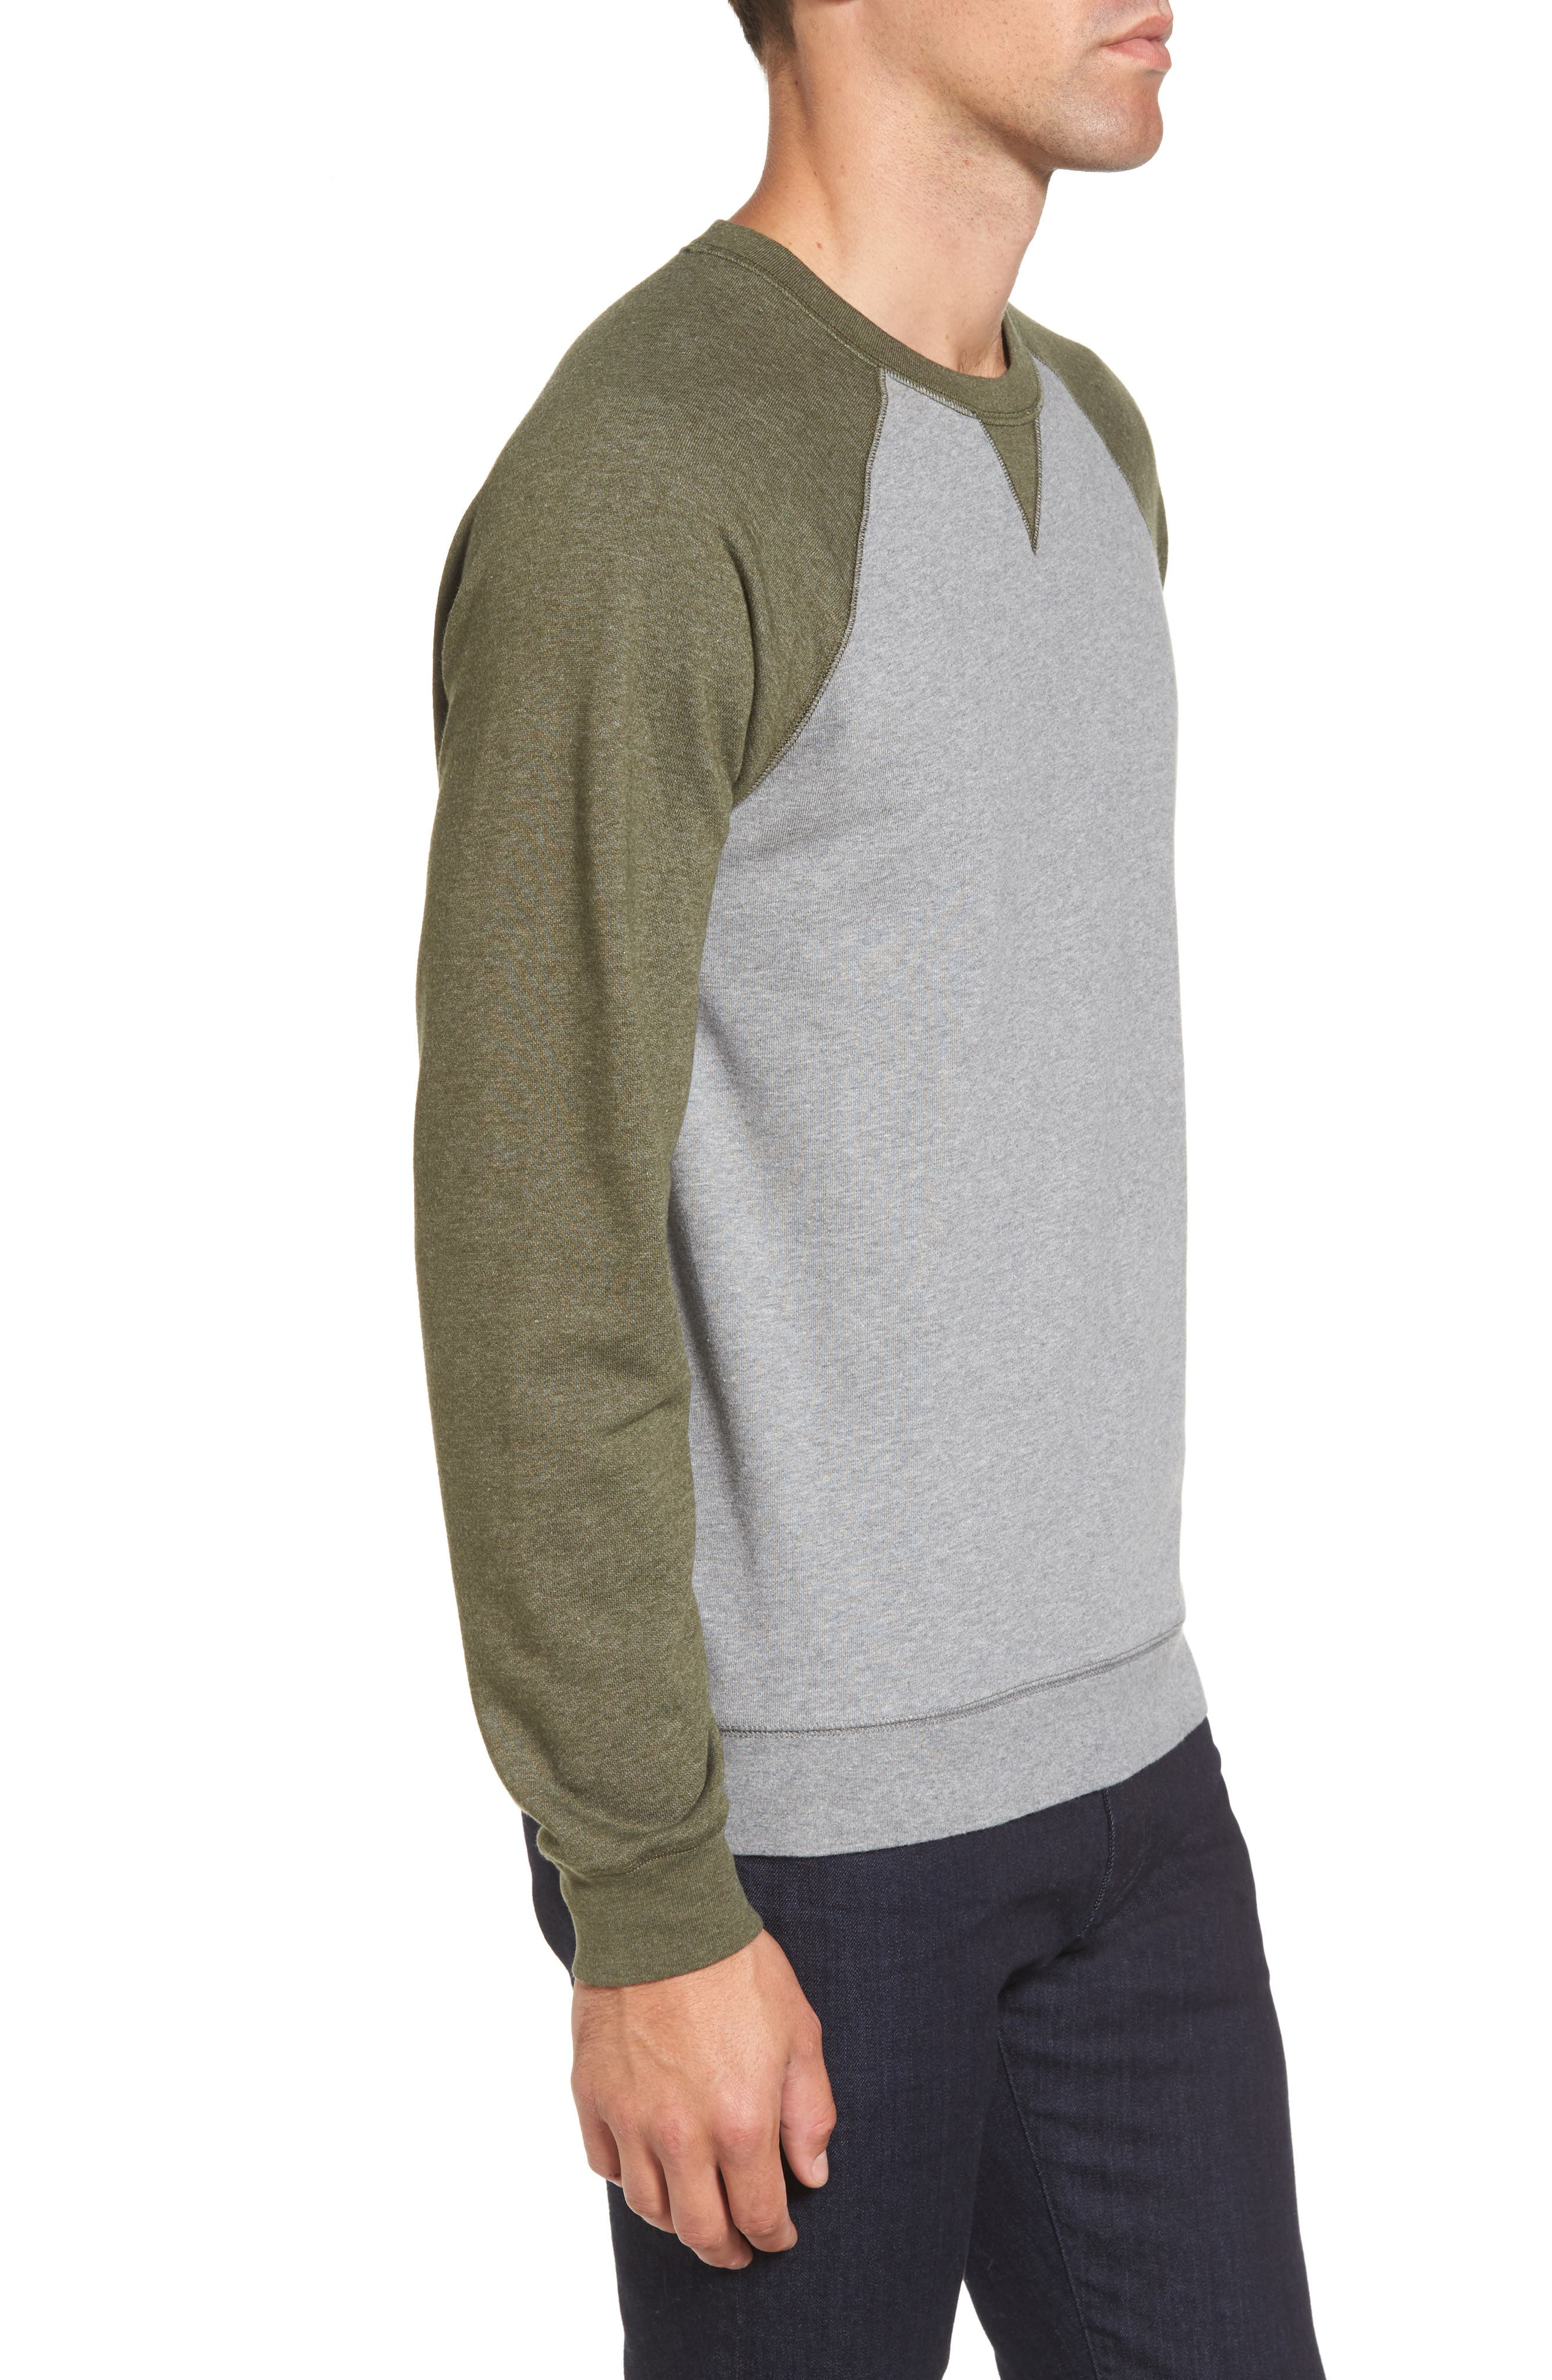 Colorblock French Terry Sweatshirt,                             Alternate thumbnail 3, color,                             Med Grey Army Heather